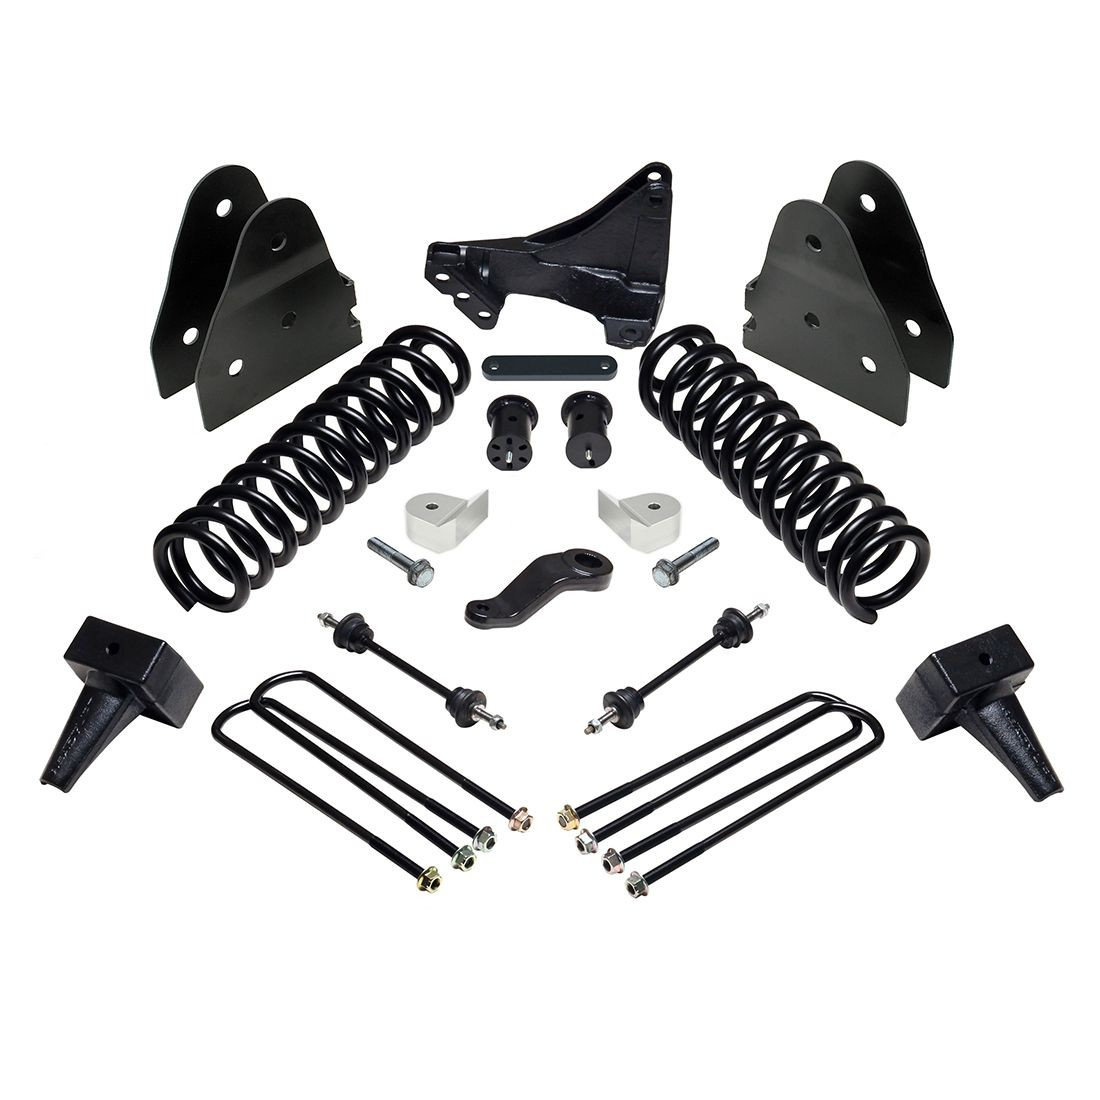 "ReadyLift 6.5"" Lift Kit - Ford Super Duty F250/F350 4WD (1-pc Drive Shaft Only) 2017-2018"